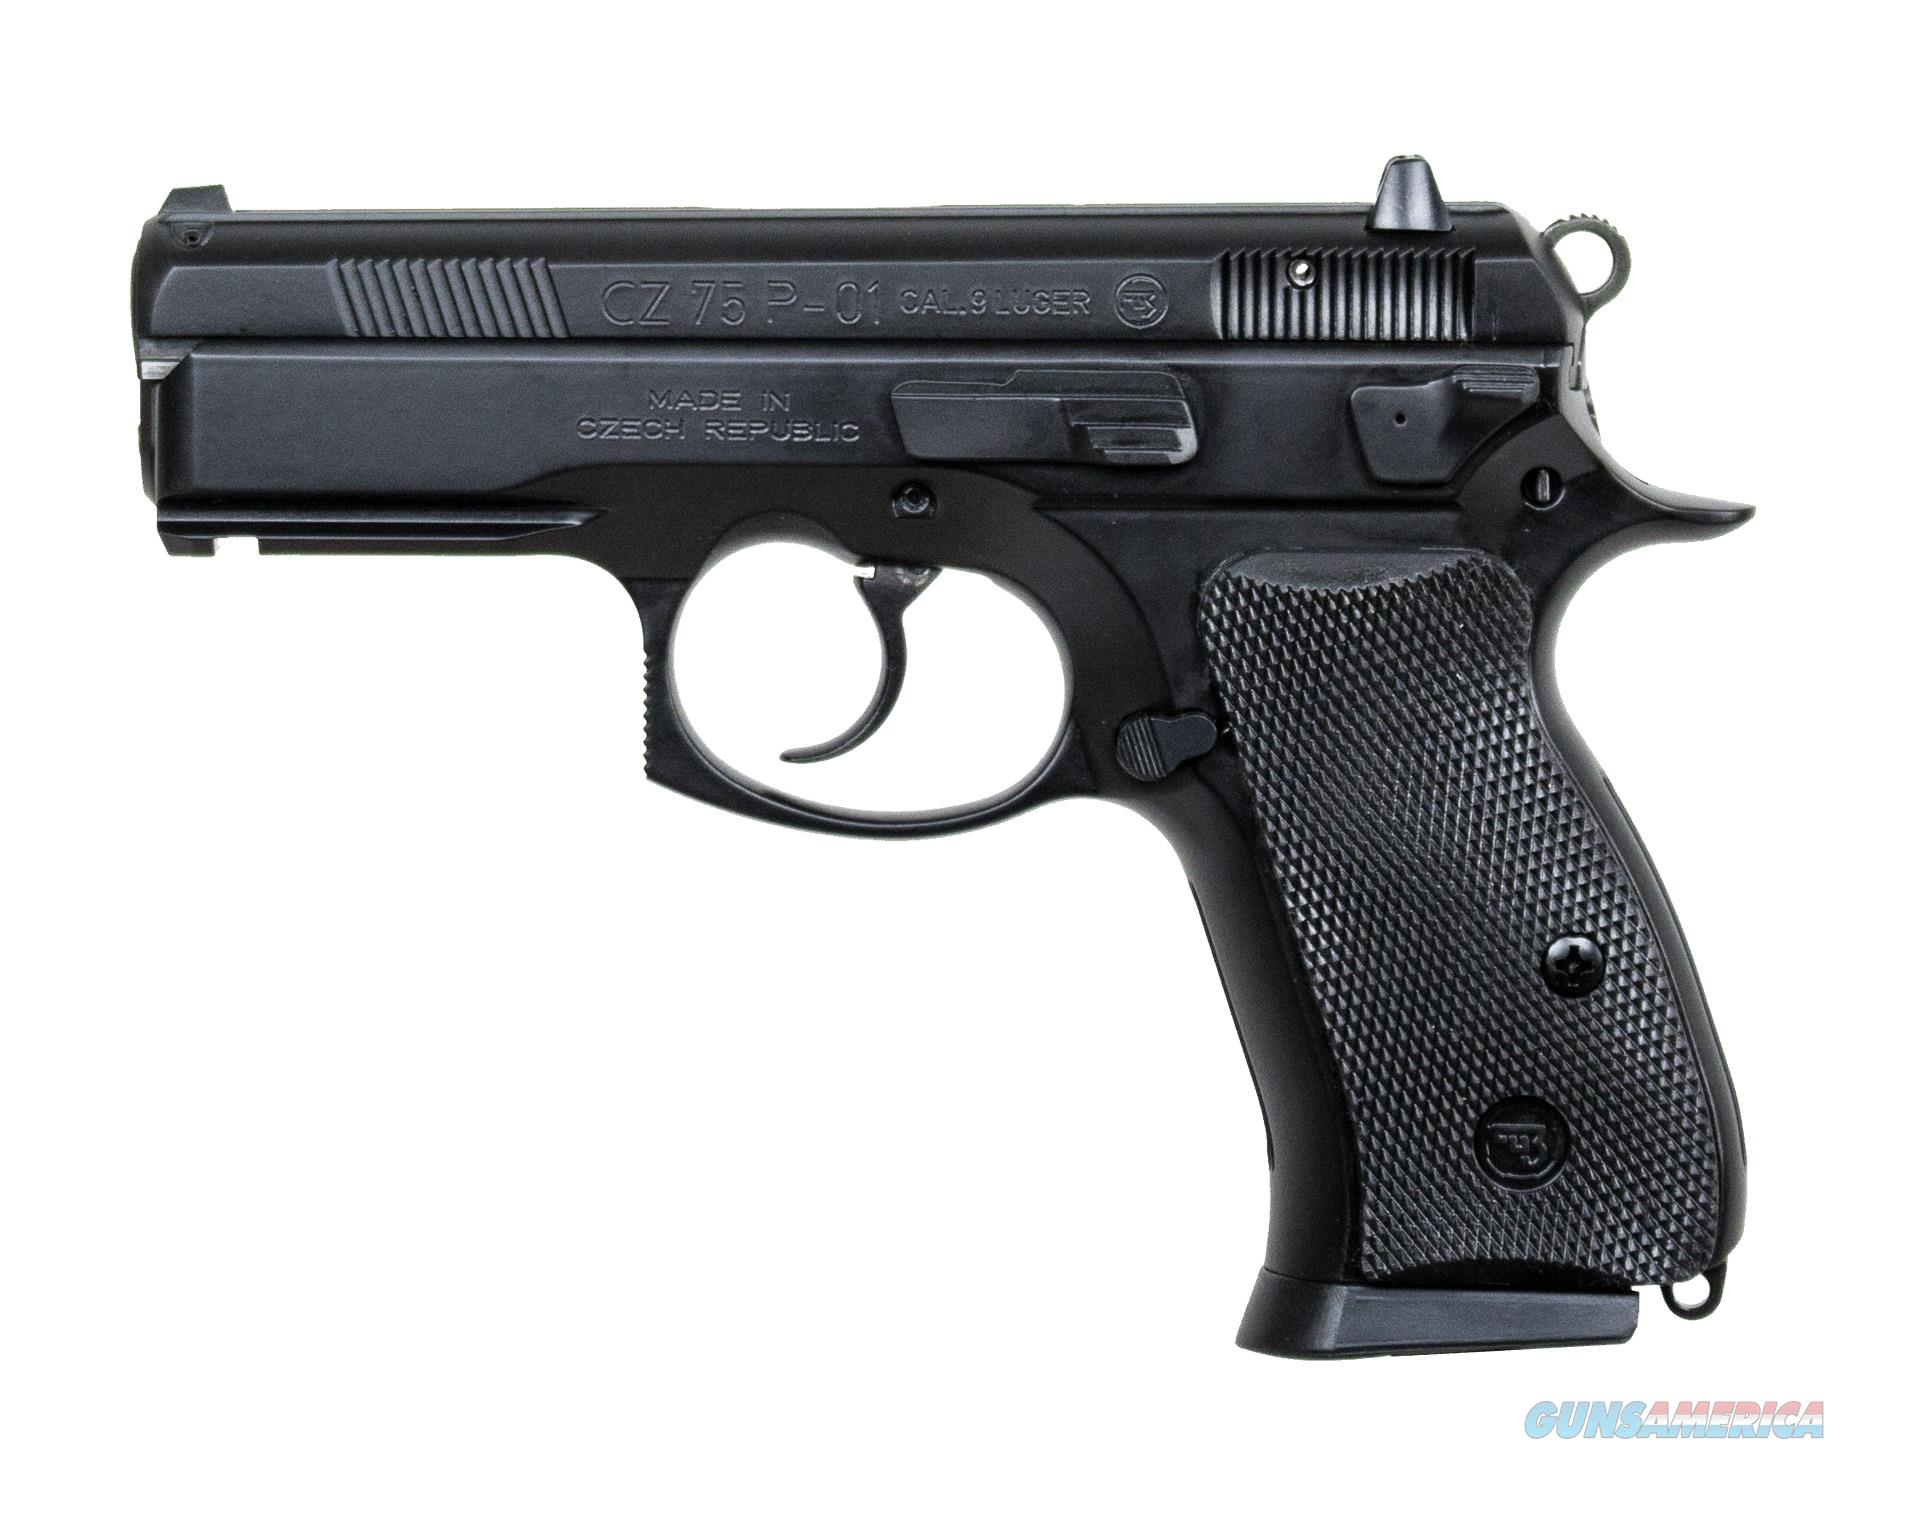 CZ 75 P-01 Compact 9mm Handgun with Rail 91199 806703911991  Guns > Pistols > CZ Pistols